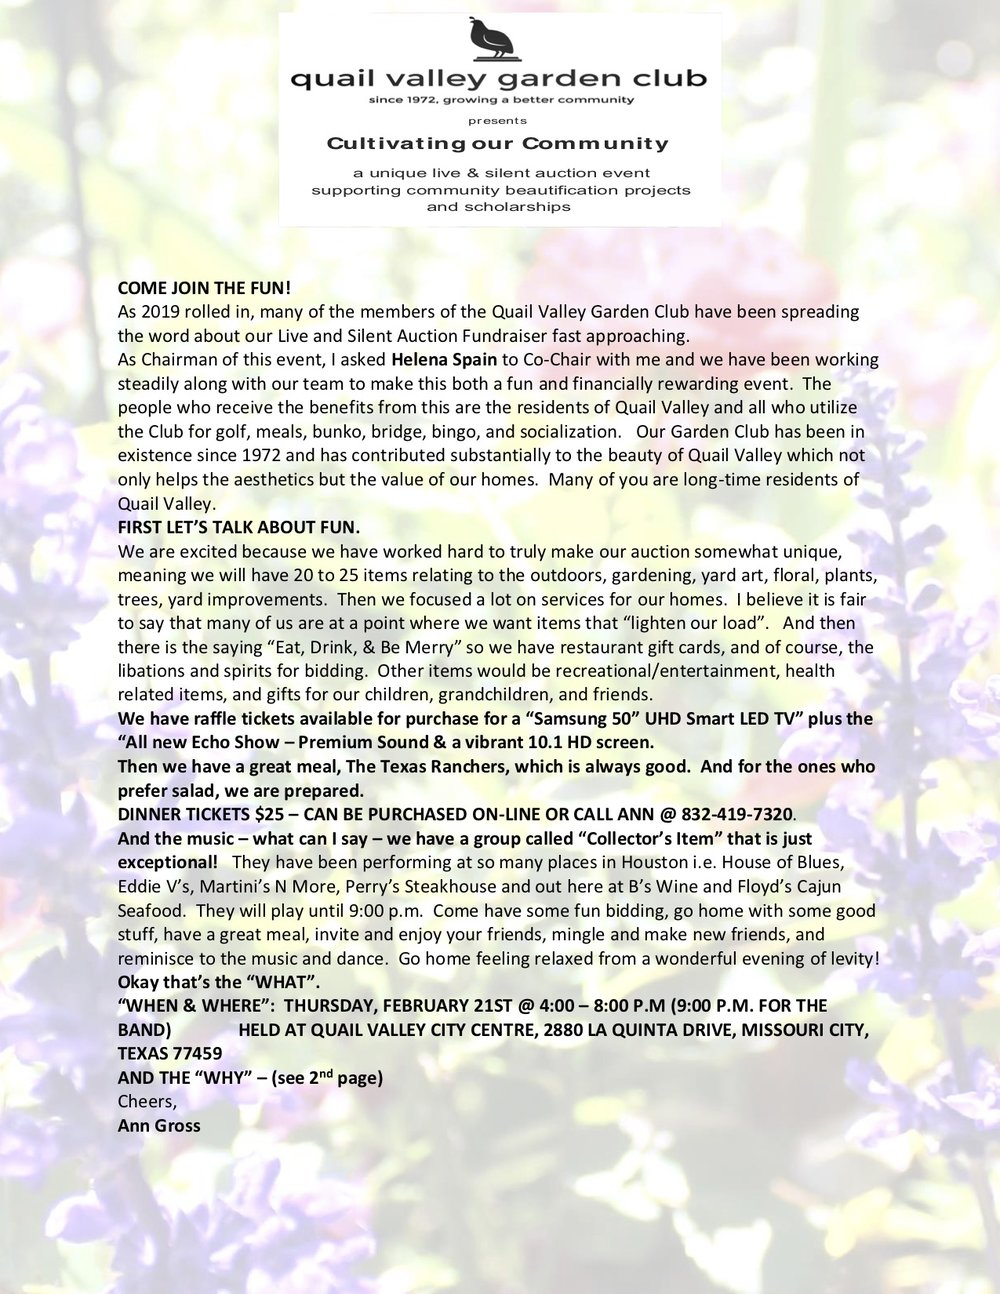 PAGE 2: The Garden Club does much more for Quail Valley than most residents realize. Some of those items are as follows: Ridgeview Park – consistent maintenance. Created and designed the Tee Garden across from the Club. Maintain the Tee Garden across from the Club. Recently donated $1500 for dead trees to be removed along 1092 that were an eyesore. We are planting more trees presently in that same location. Contributed $200 per year for 12 years for tree planting for Arbor Day. Volunteer at Brookwood School (for the intellectually challenged) in the name of Quail Valley. We have been asked by Cyrille Girouard if our Garden Club would be willing to help fine-tune the area where outdoor weddings take place. Sponsor Yard of the Month. Responsible for QV Residential Holiday Lighting Awards. Responsible for The Annual Backyard Tour. Responsible for the Annual Caladium Bulb Sales. Participate in Missouri City Spring Clean Up. Provide scholarships to local deserving students. Cheers, Ann Gross Co-Chair 2019 Quail Valley Garden Club Live & Silent Auction Fundraiser